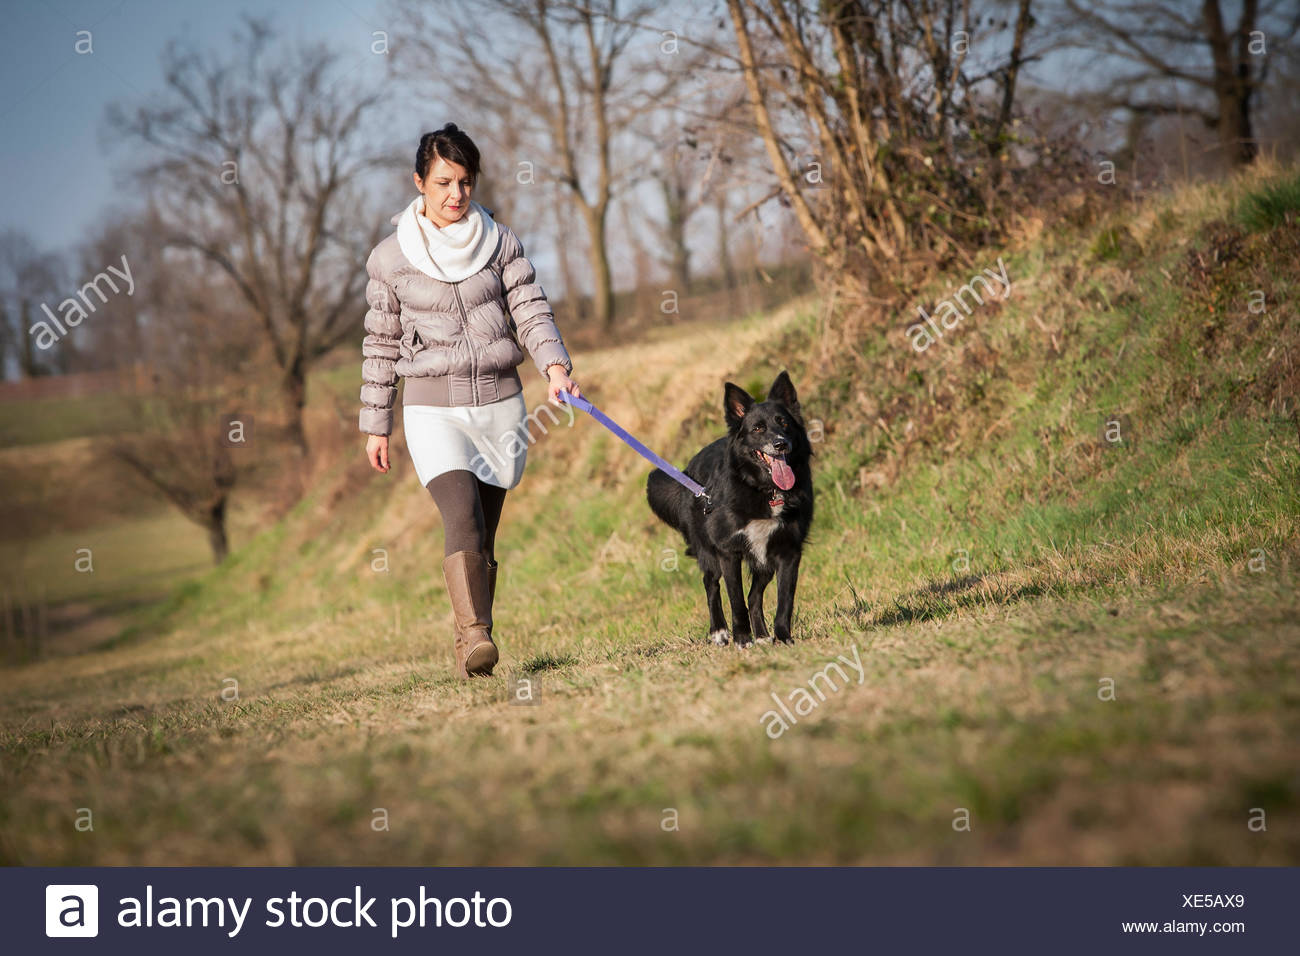 Mid adult woman walking her dog in field - Stock Image